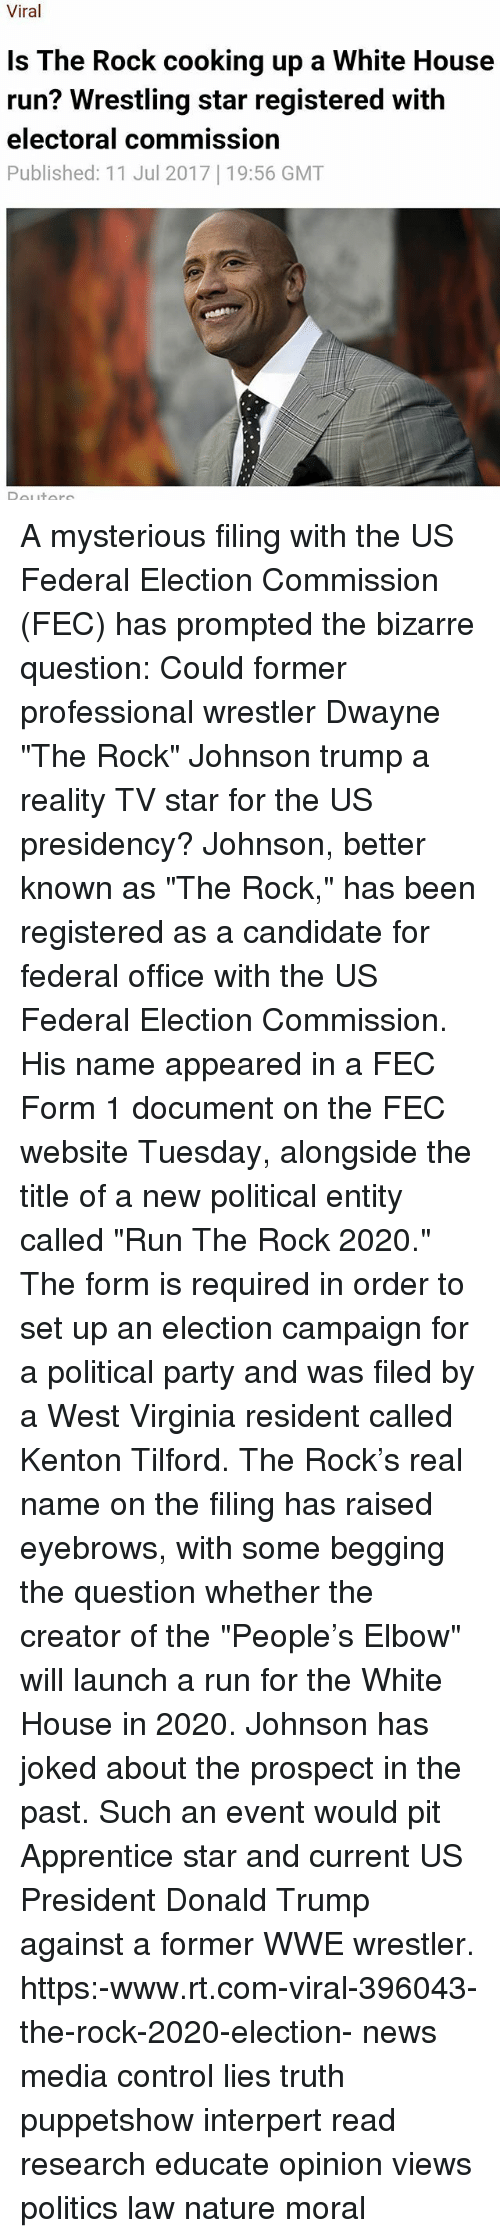 """wwe wrestlers: Viral  Is The Rock cooking up a White House  run? Wrestling star registered with  electoral commission  Published: 11 Jul 2017 19:56 GMT A mysterious filing with the US Federal Election Commission (FEC) has prompted the bizarre question: Could former professional wrestler Dwayne """"The Rock"""" Johnson trump a reality TV star for the US presidency? Johnson, better known as """"The Rock,"""" has been registered as a candidate for federal office with the US Federal Election Commission. His name appeared in a FEC Form 1 document on the FEC website Tuesday, alongside the title of a new political entity called """"Run The Rock 2020."""" The form is required in order to set up an election campaign for a political party and was filed by a West Virginia resident called Kenton Tilford. The Rock's real name on the filing has raised eyebrows, with some begging the question whether the creator of the """"People's Elbow"""" will launch a run for the White House in 2020. Johnson has joked about the prospect in the past. Such an event would pit Apprentice star and current US President Donald Trump against a former WWE wrestler. https:-www.rt.com-viral-396043-the-rock-2020-election- news media control lies truth puppetshow interpert read research educate opinion views politics law nature moral"""